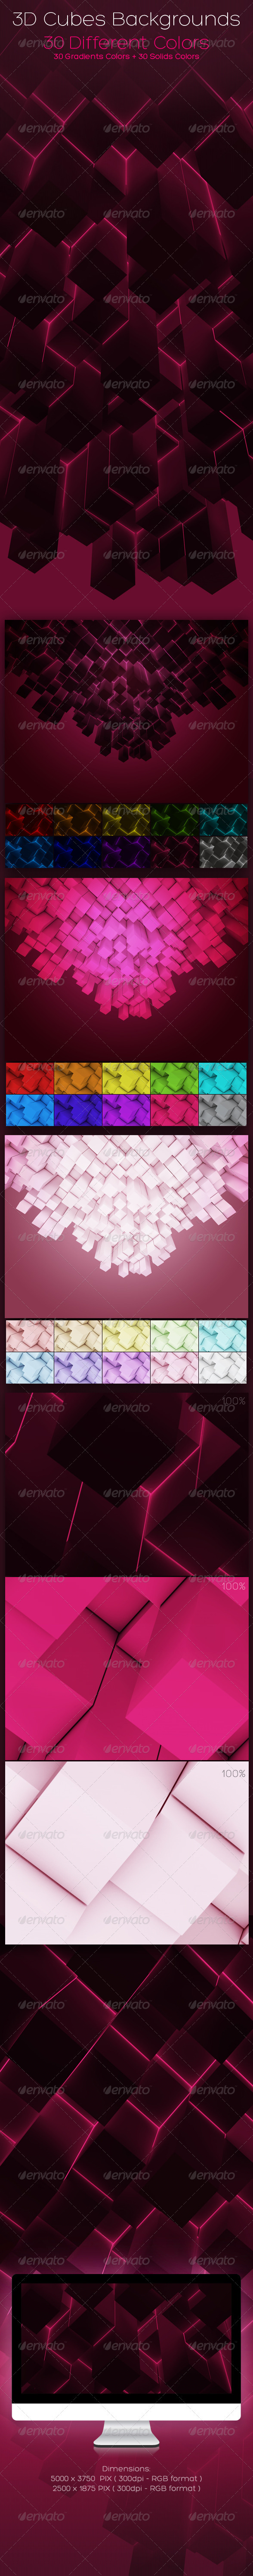 GraphicRiver 3D Cubes Backgrounds 1176352